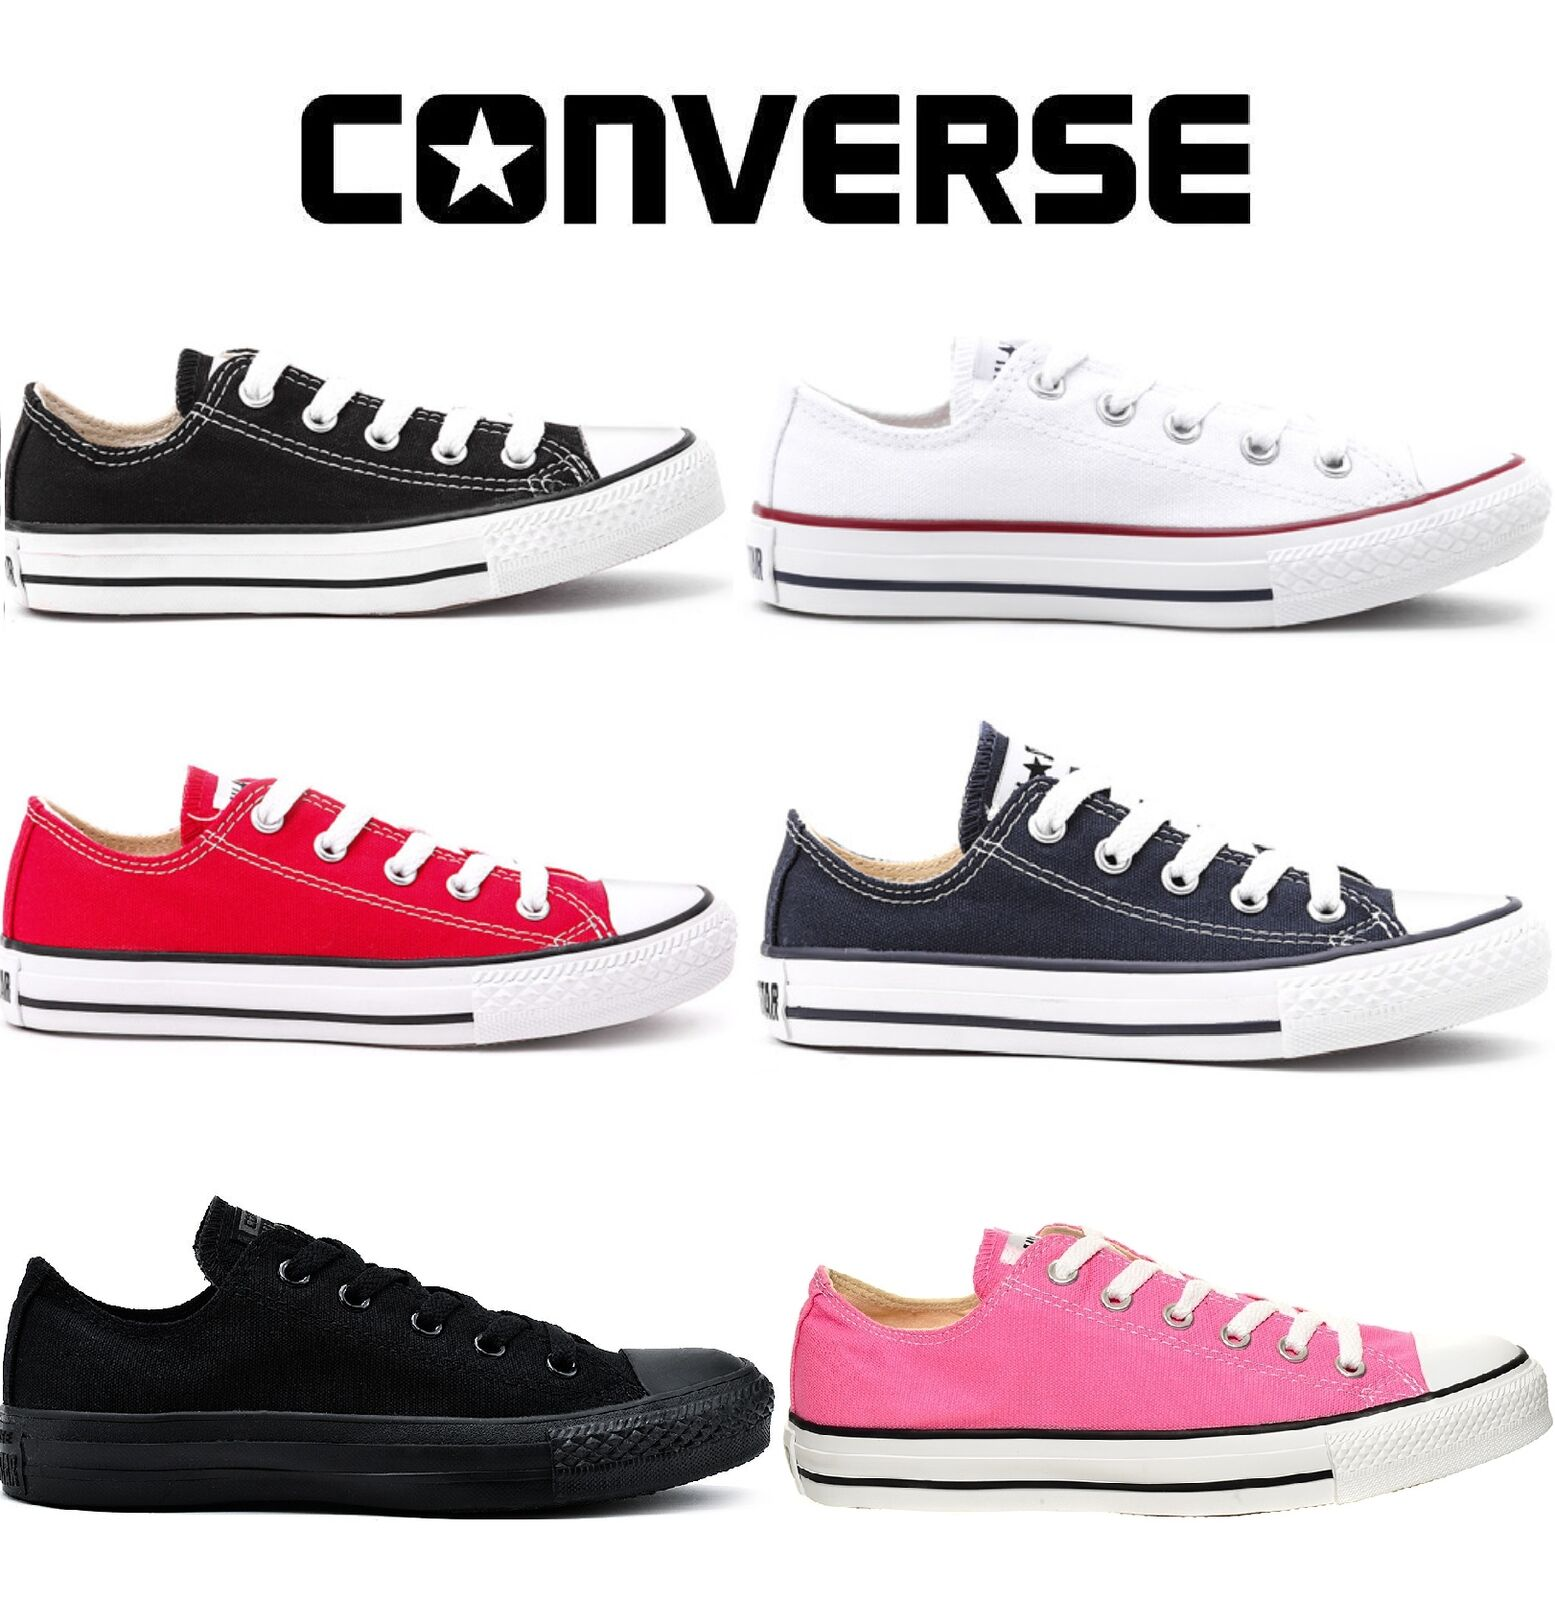 Converse Defective Shoes